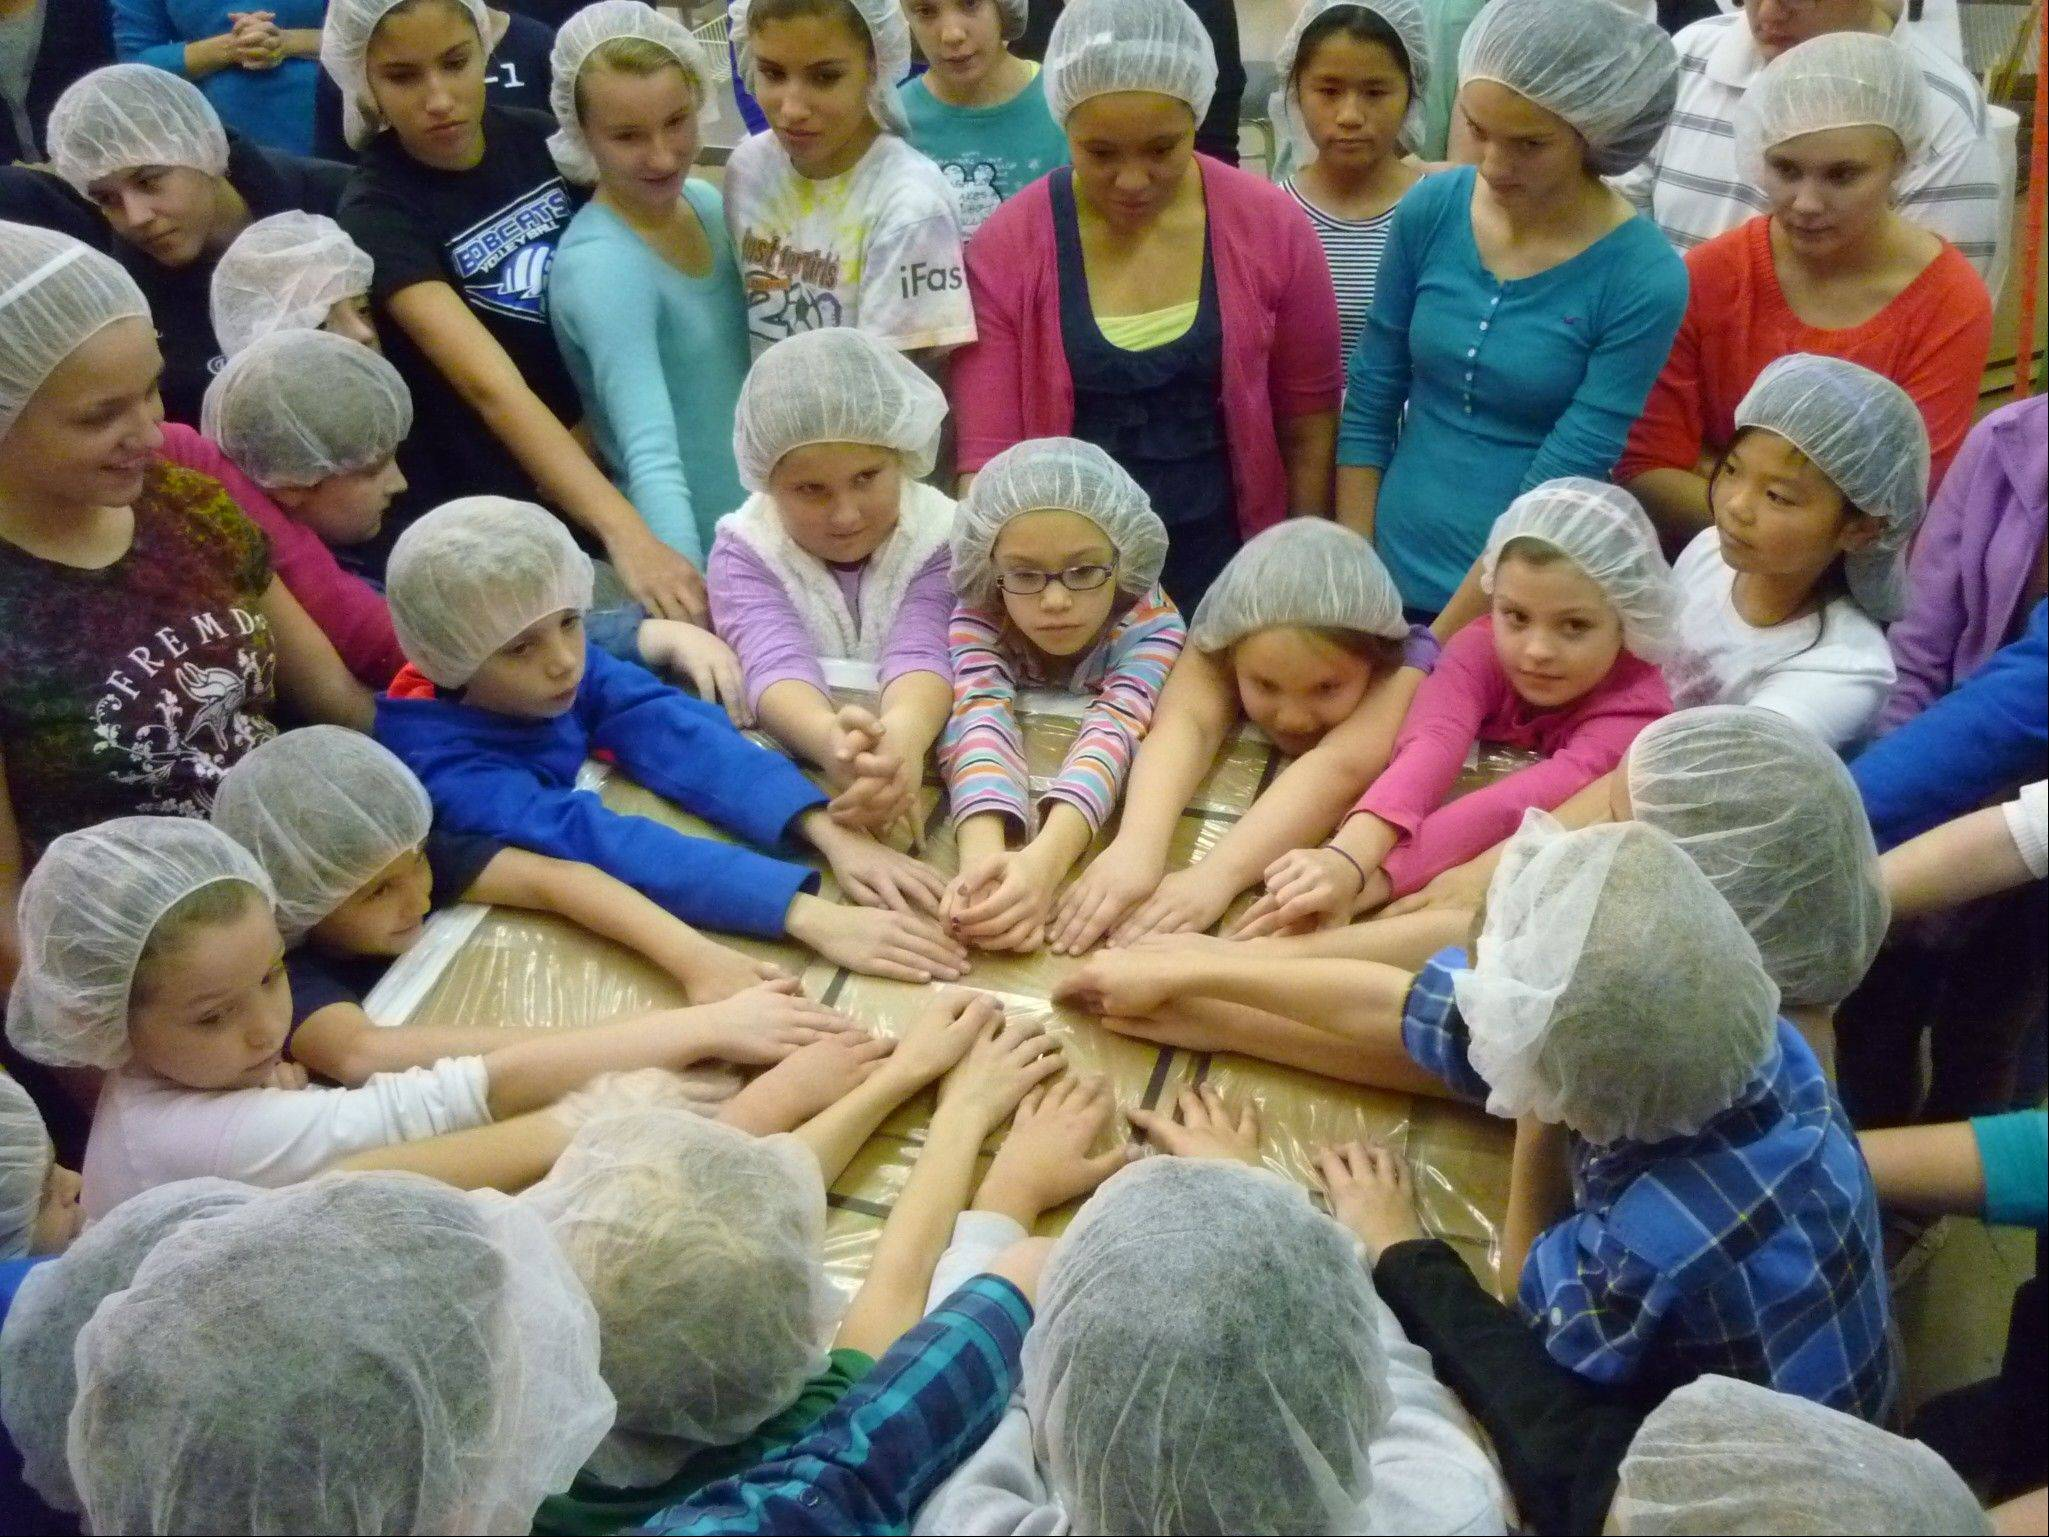 After boxing the food packets, students at Immanuel Lutheran School in Palatine pray that the food packets they prepared arrives safely in Swaziland, Africa, and nourishes the bodies of the children receiving the food.